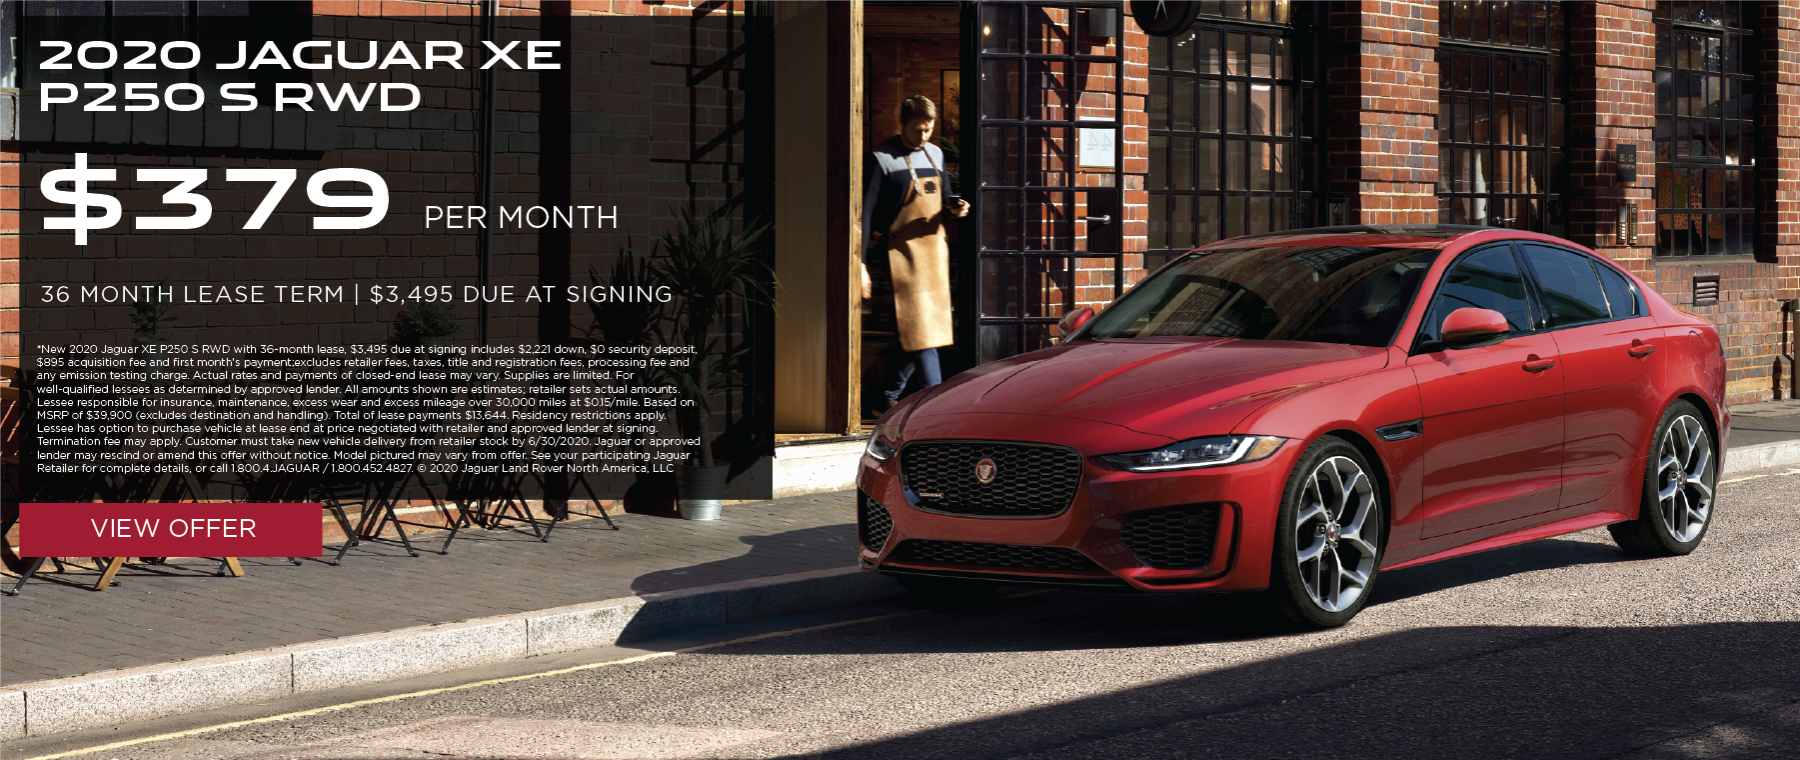 2020 JAGUAR XE P250 S RWD. $379 PER MONTH. 36 MONTH LEASE TERM WITH $3,495 DUE AT SIGNING. $0 SECURITY DEPOSIT. 10,000 MILES PER YEAR. EXCLUDES RETAILER FEES, TAXES, TITLE AND REGISTRATION FEES, PROCESSING FEE AND ANY EMISSION TESTING CHARGE. OFFER ENDS 6/30/2020.